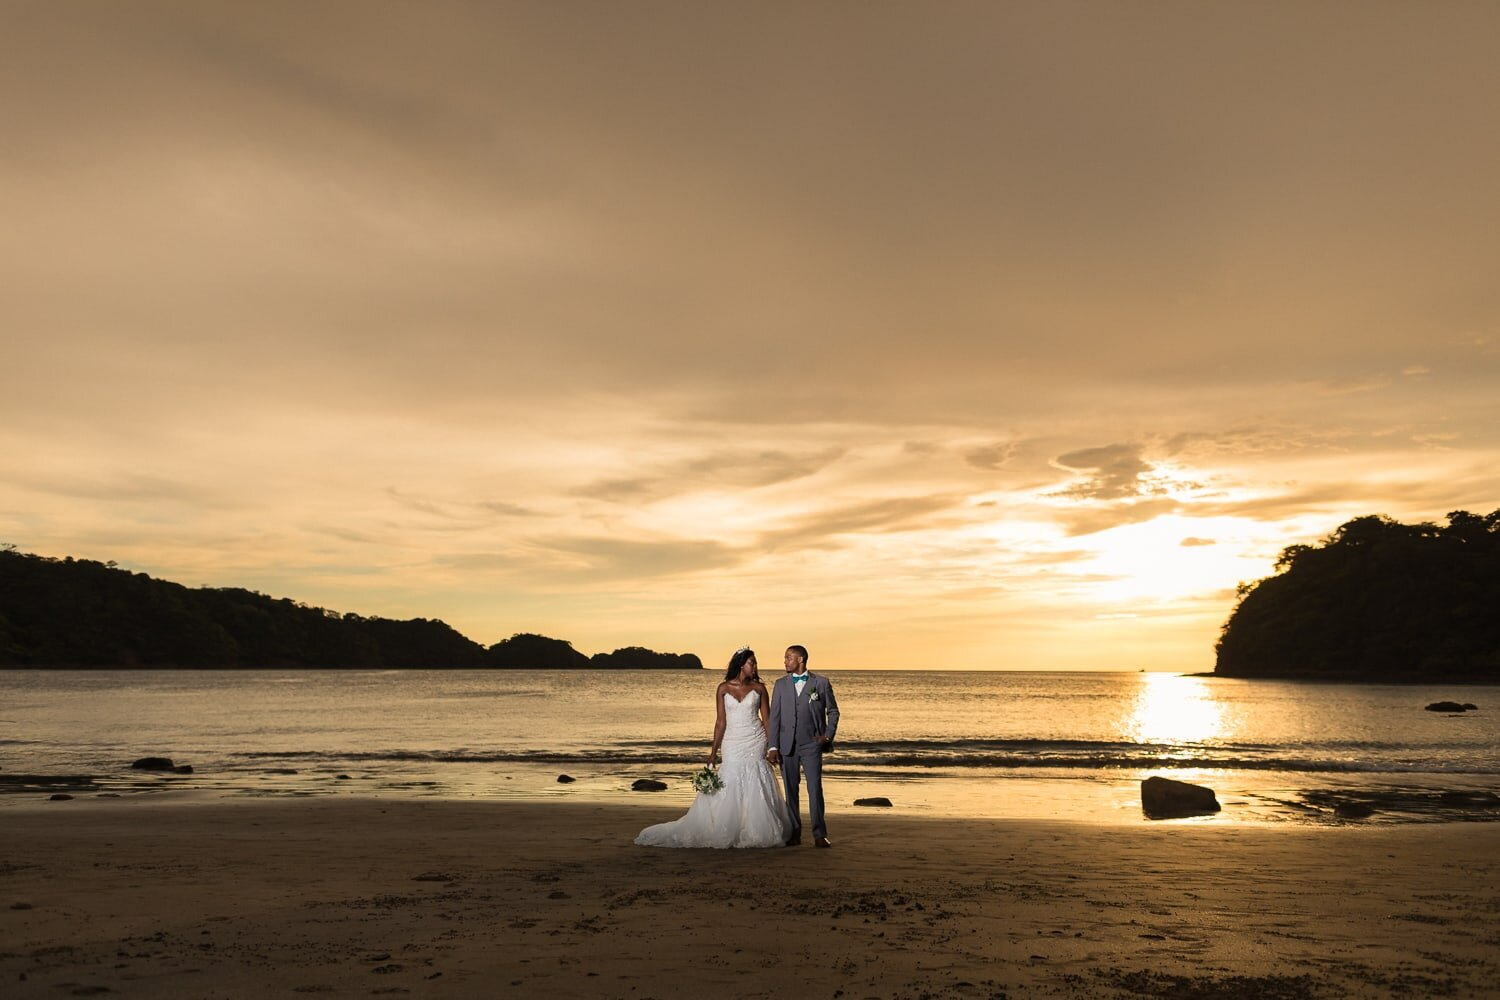 tylenn-xavier-wedding-dreams-las-mareas-costa-rica-11.jpg